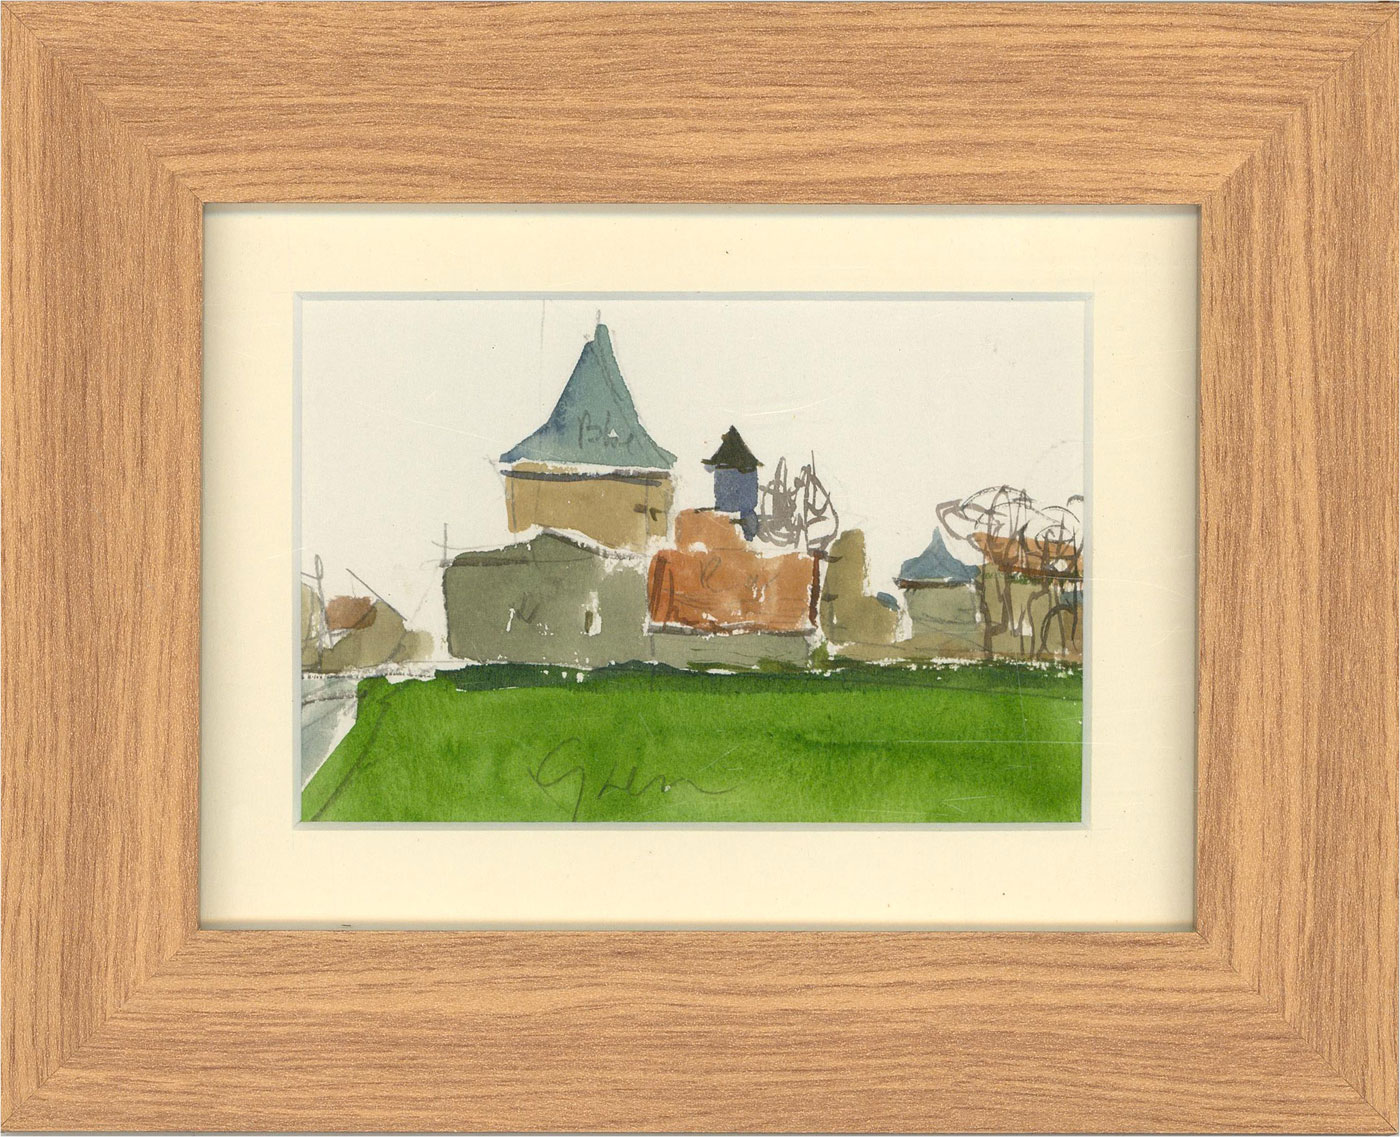 Peter Collins ARCA - Framed Contemporary Watercolour, The Village Green